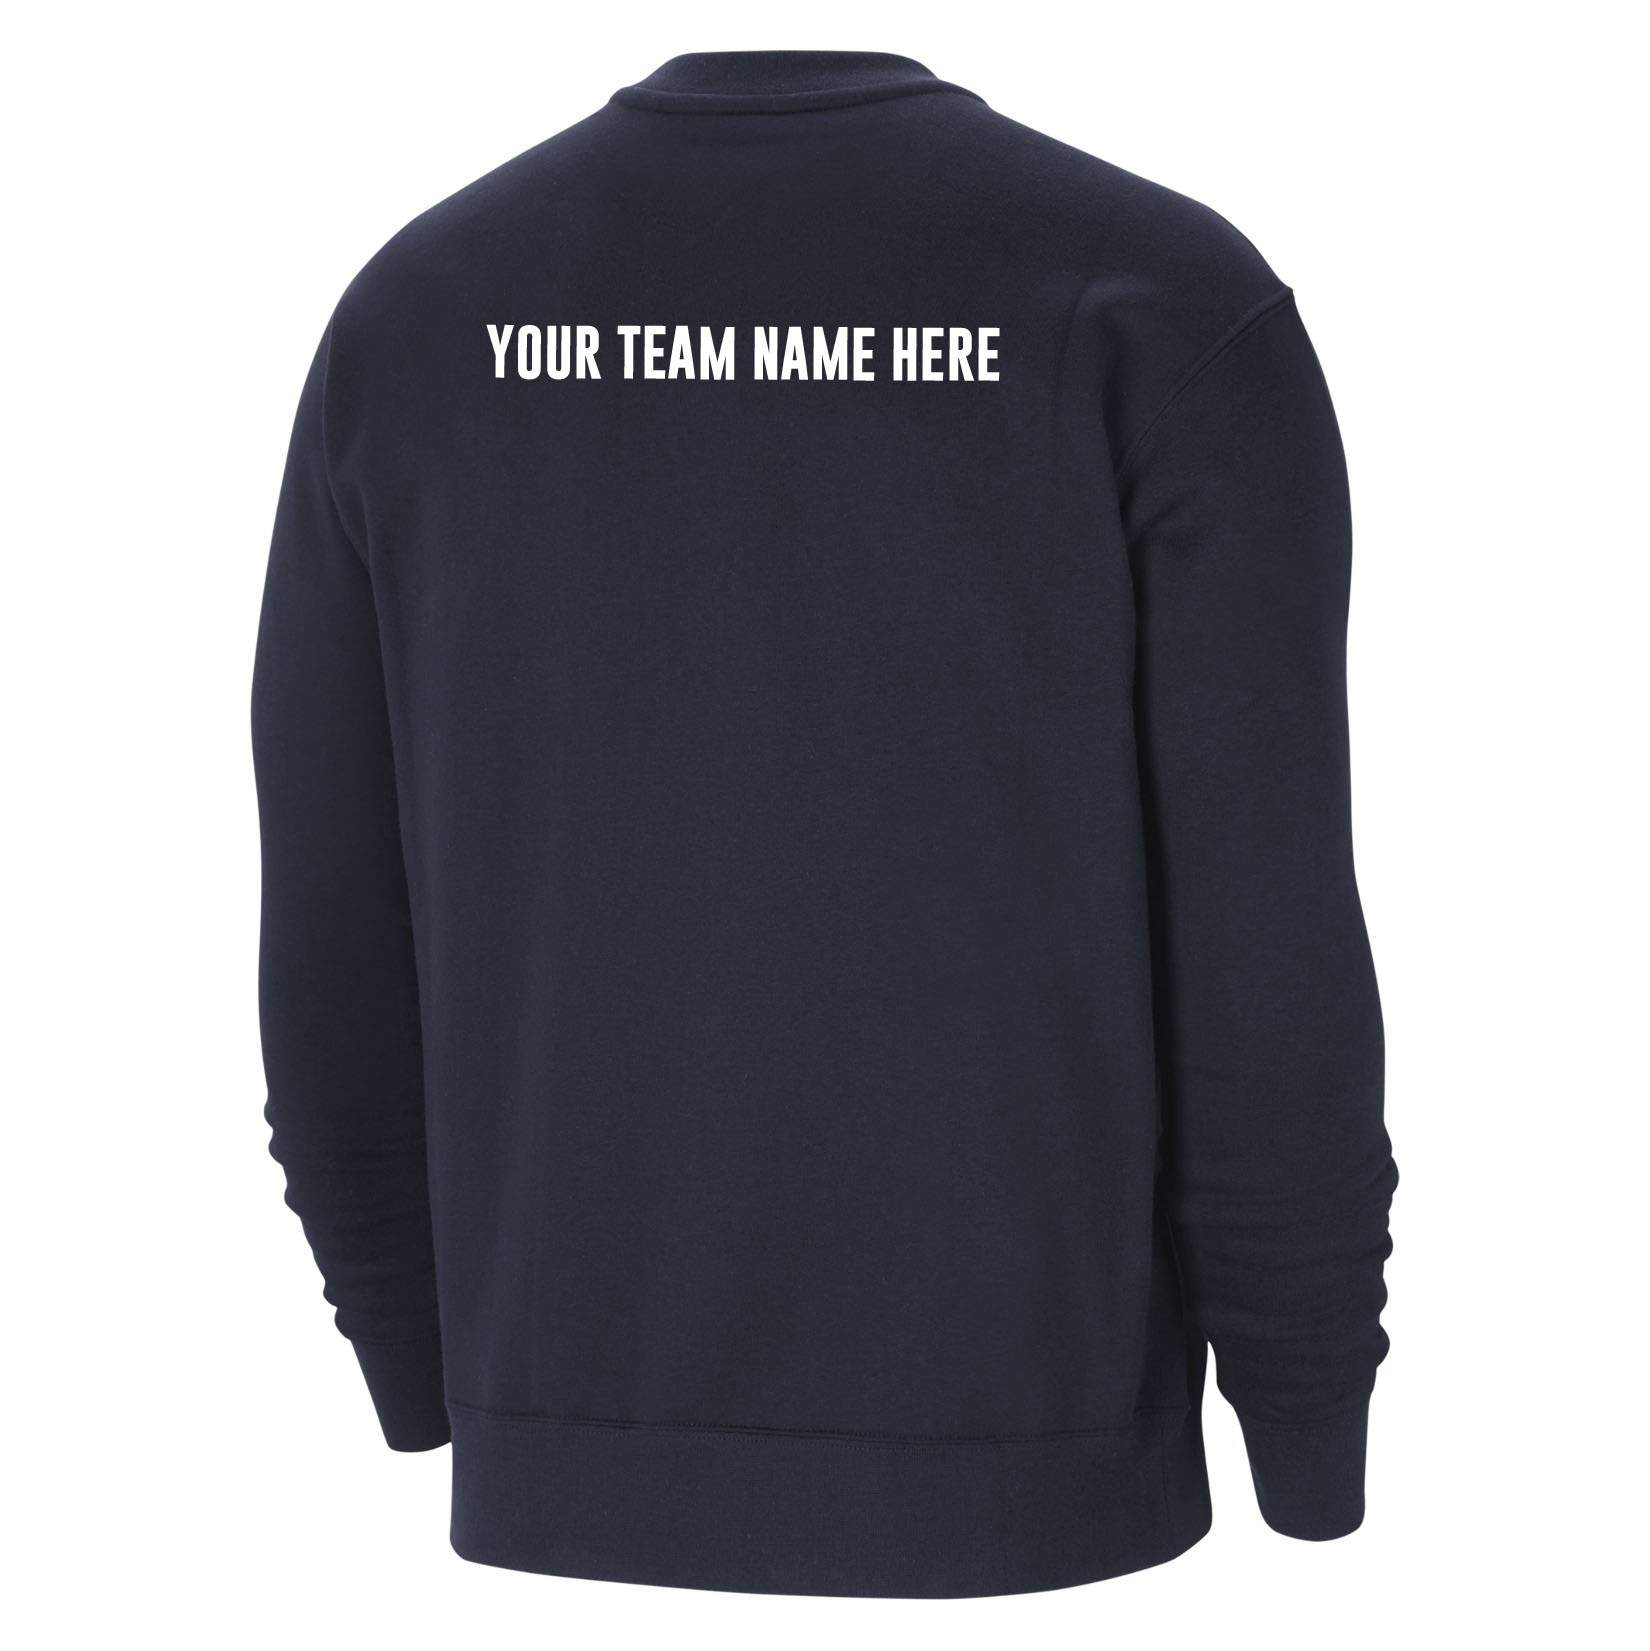 Nike Team Club 20 Fleece Crew Sweatshirt